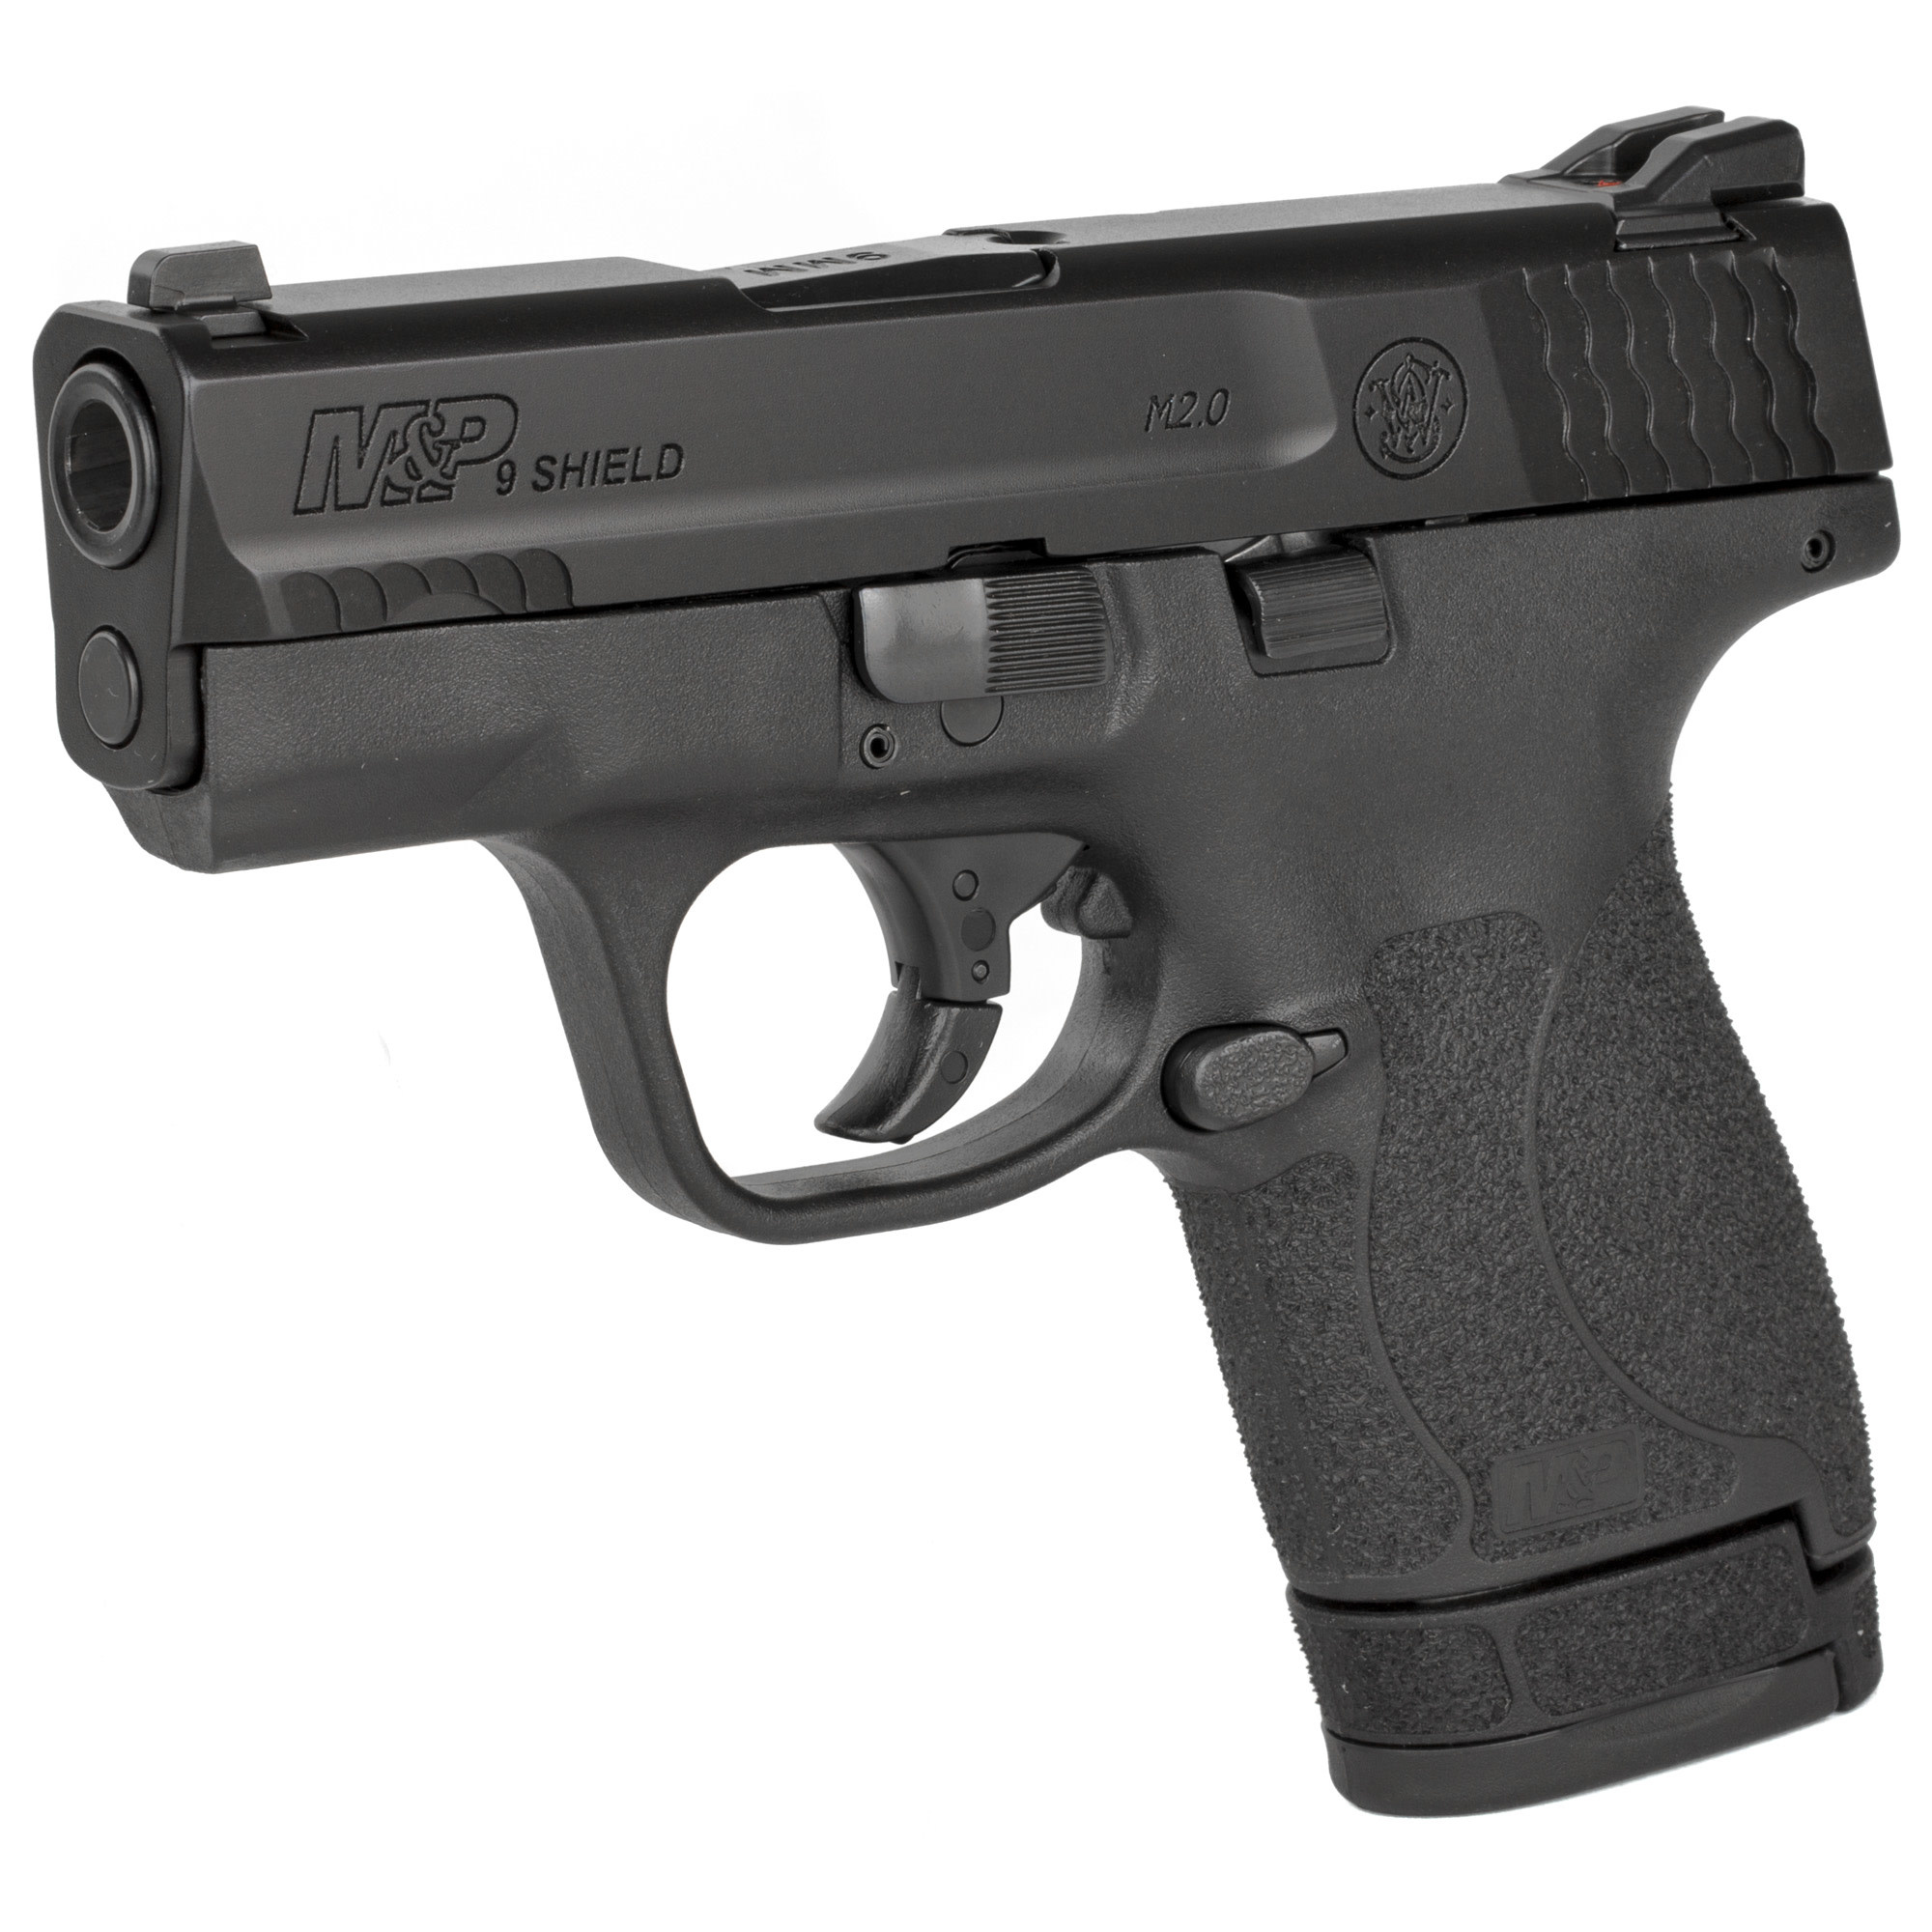 Smith & Wesson M&P Shield M2.0, 9mm, No Thumb Safety, 8 rd